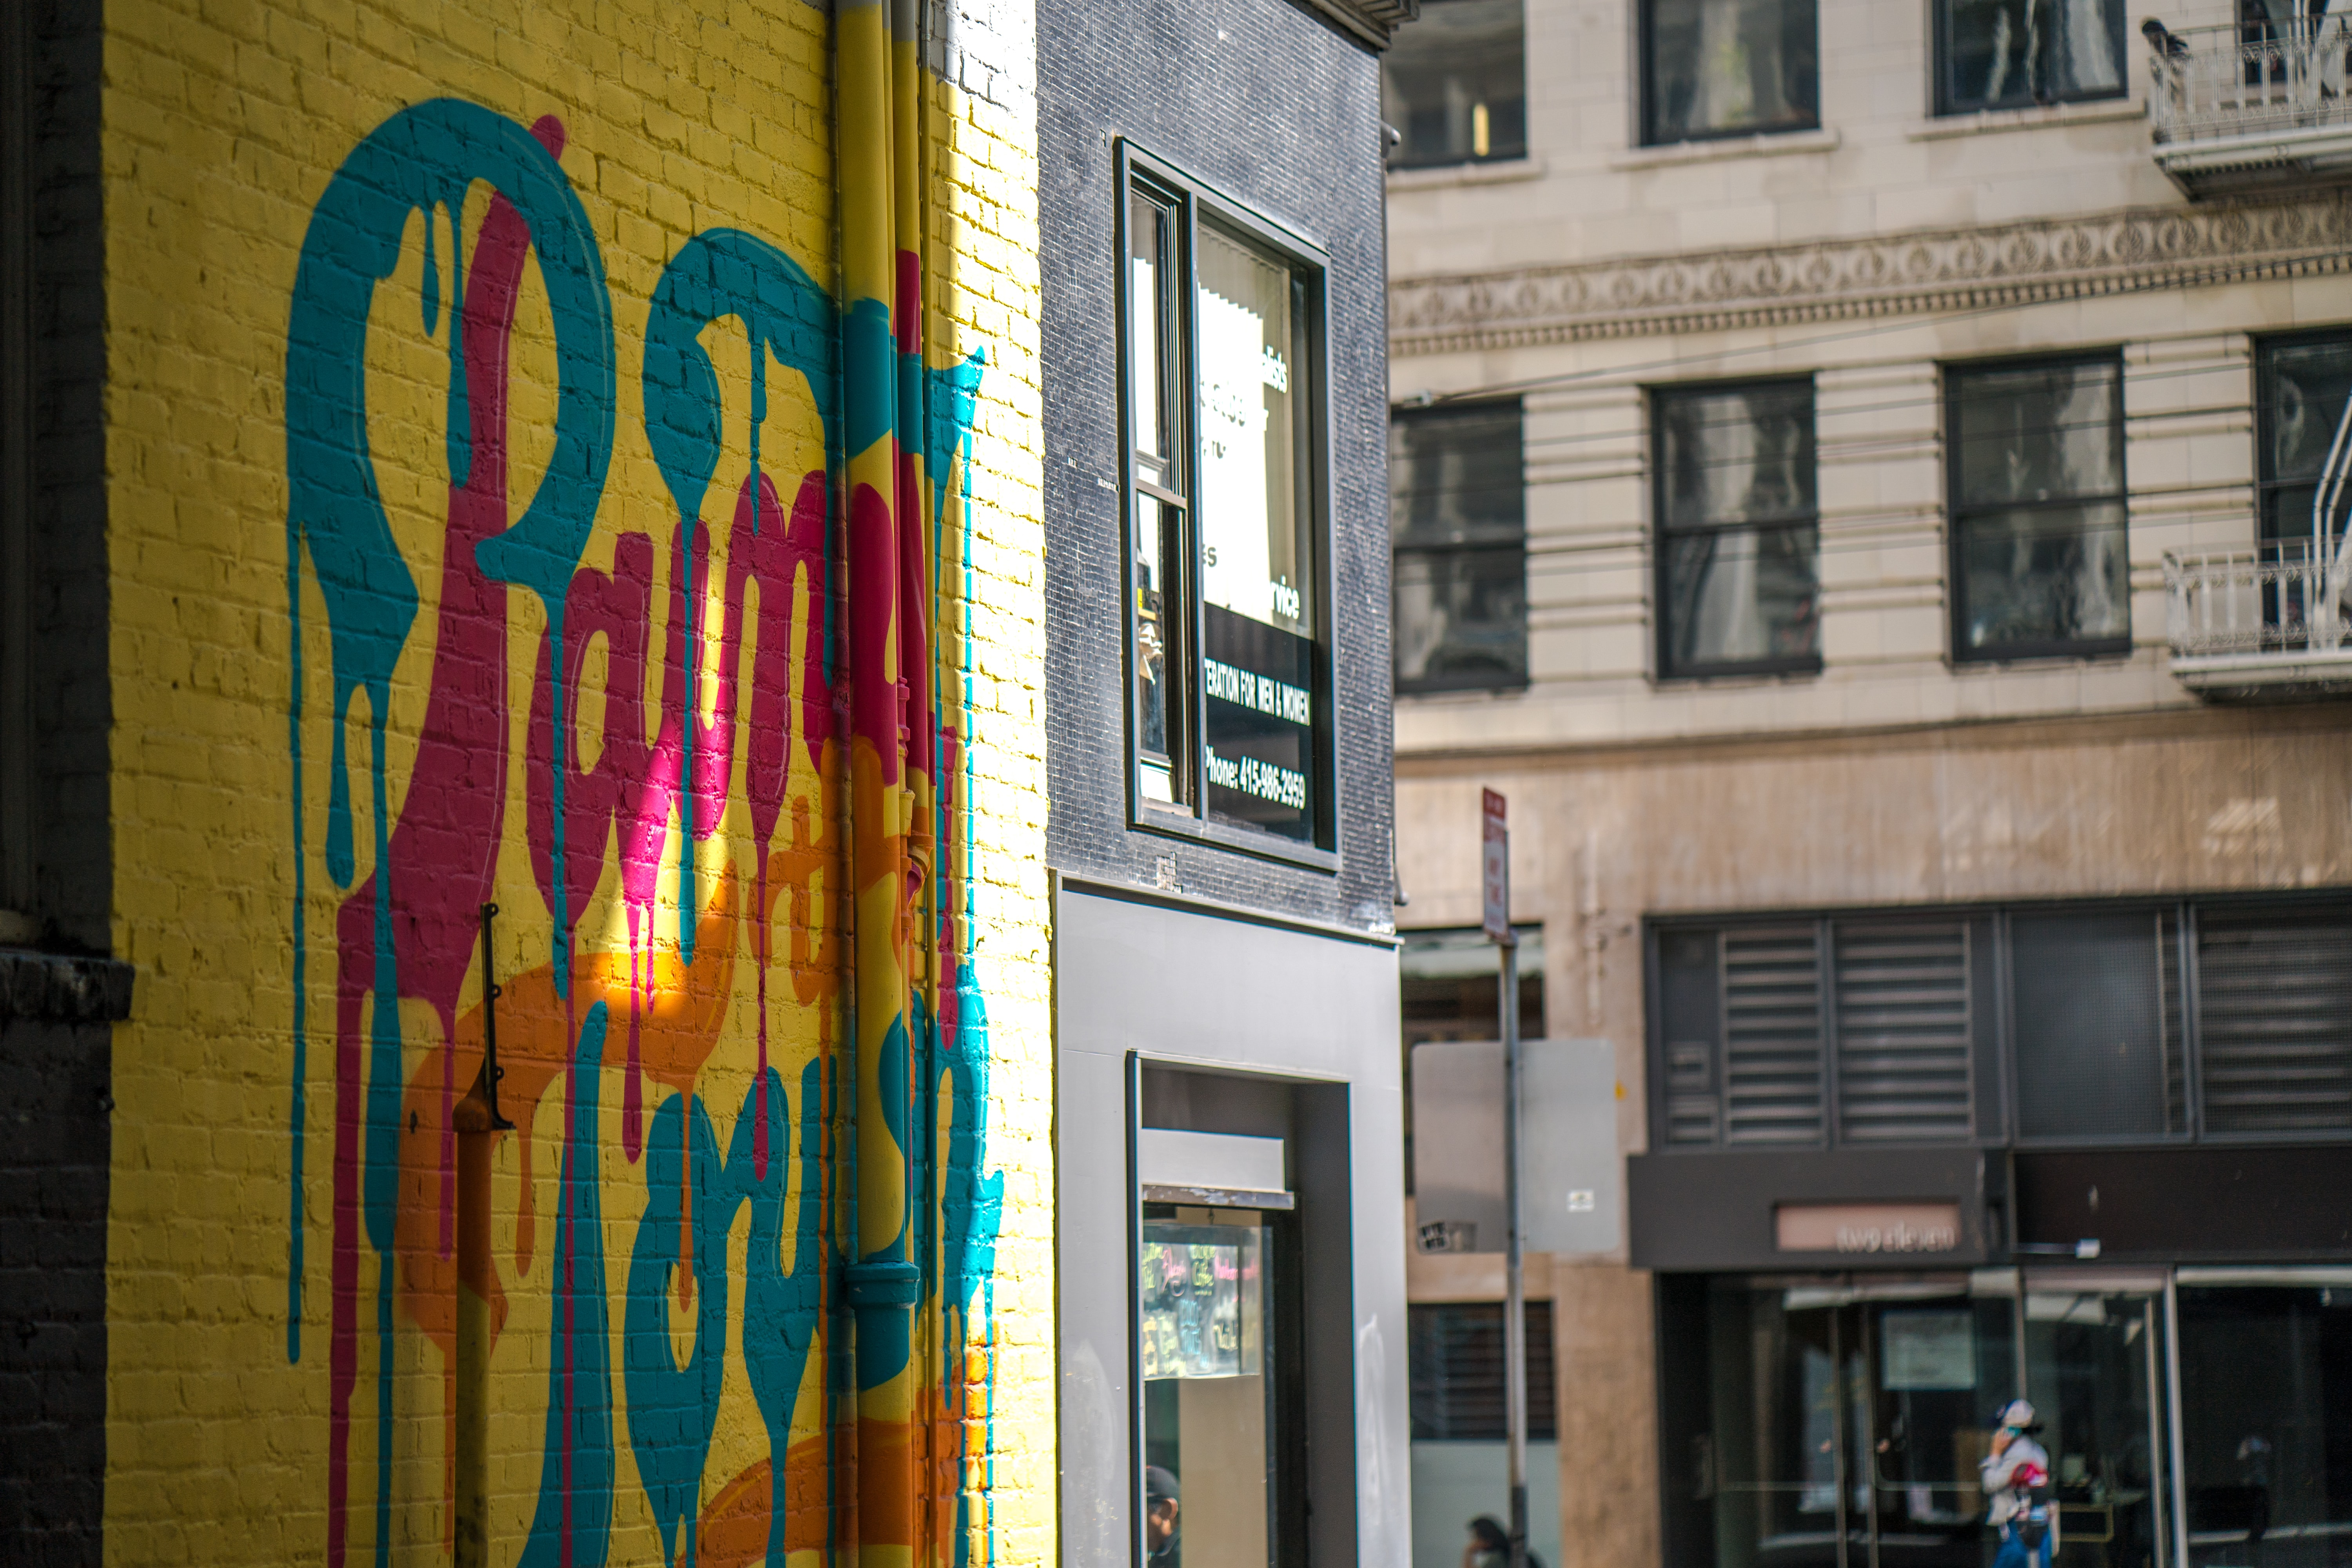 side view of graffiti at the alley